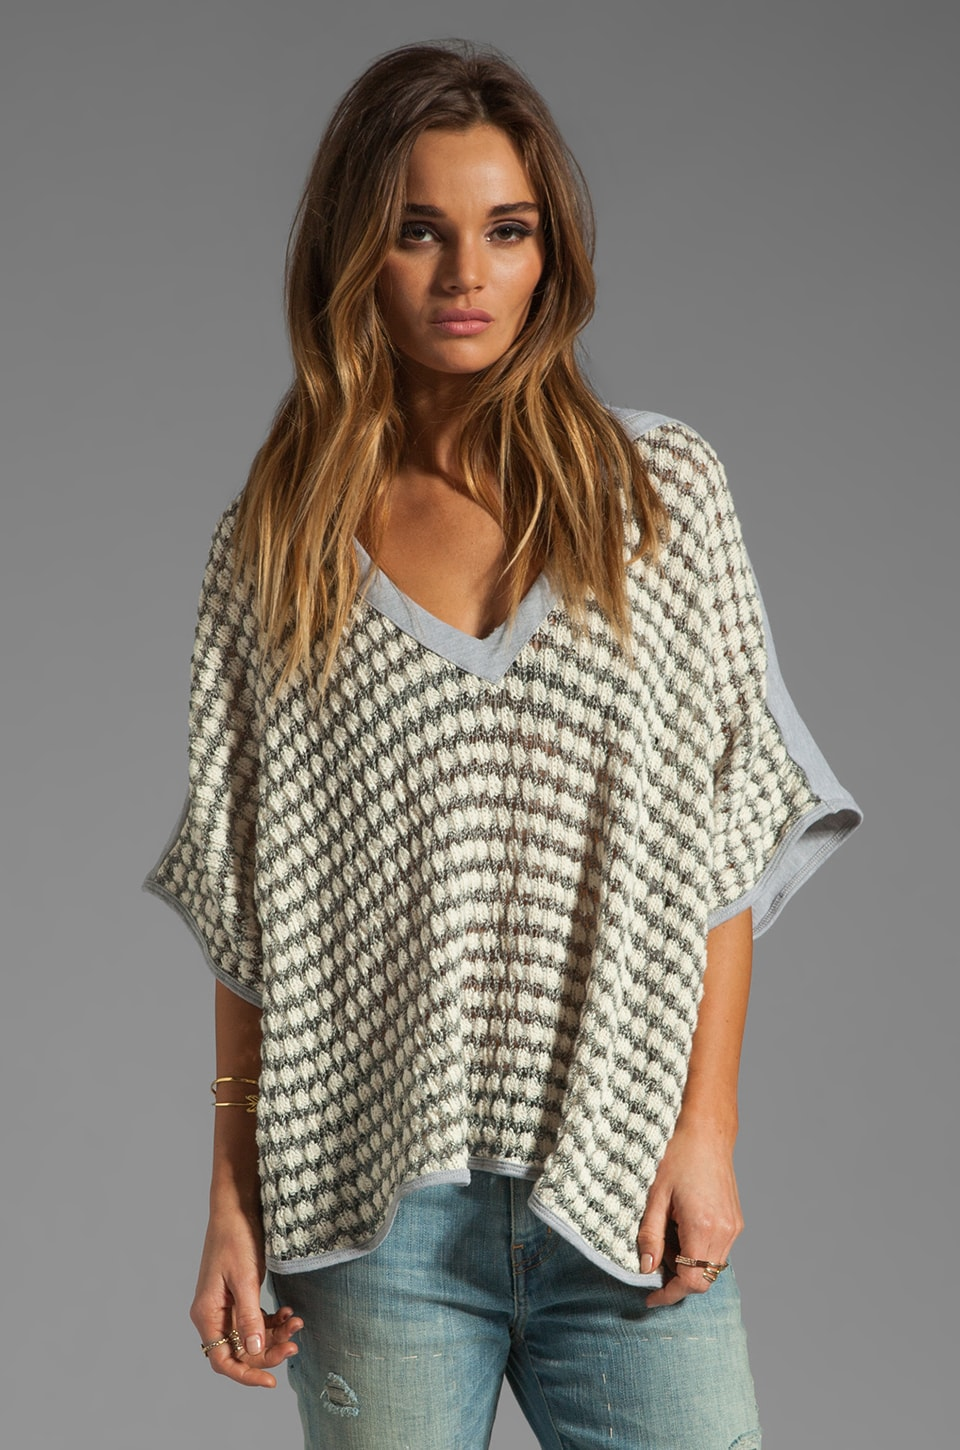 WOODLEIGH Janet Poncho in Cream Stripe